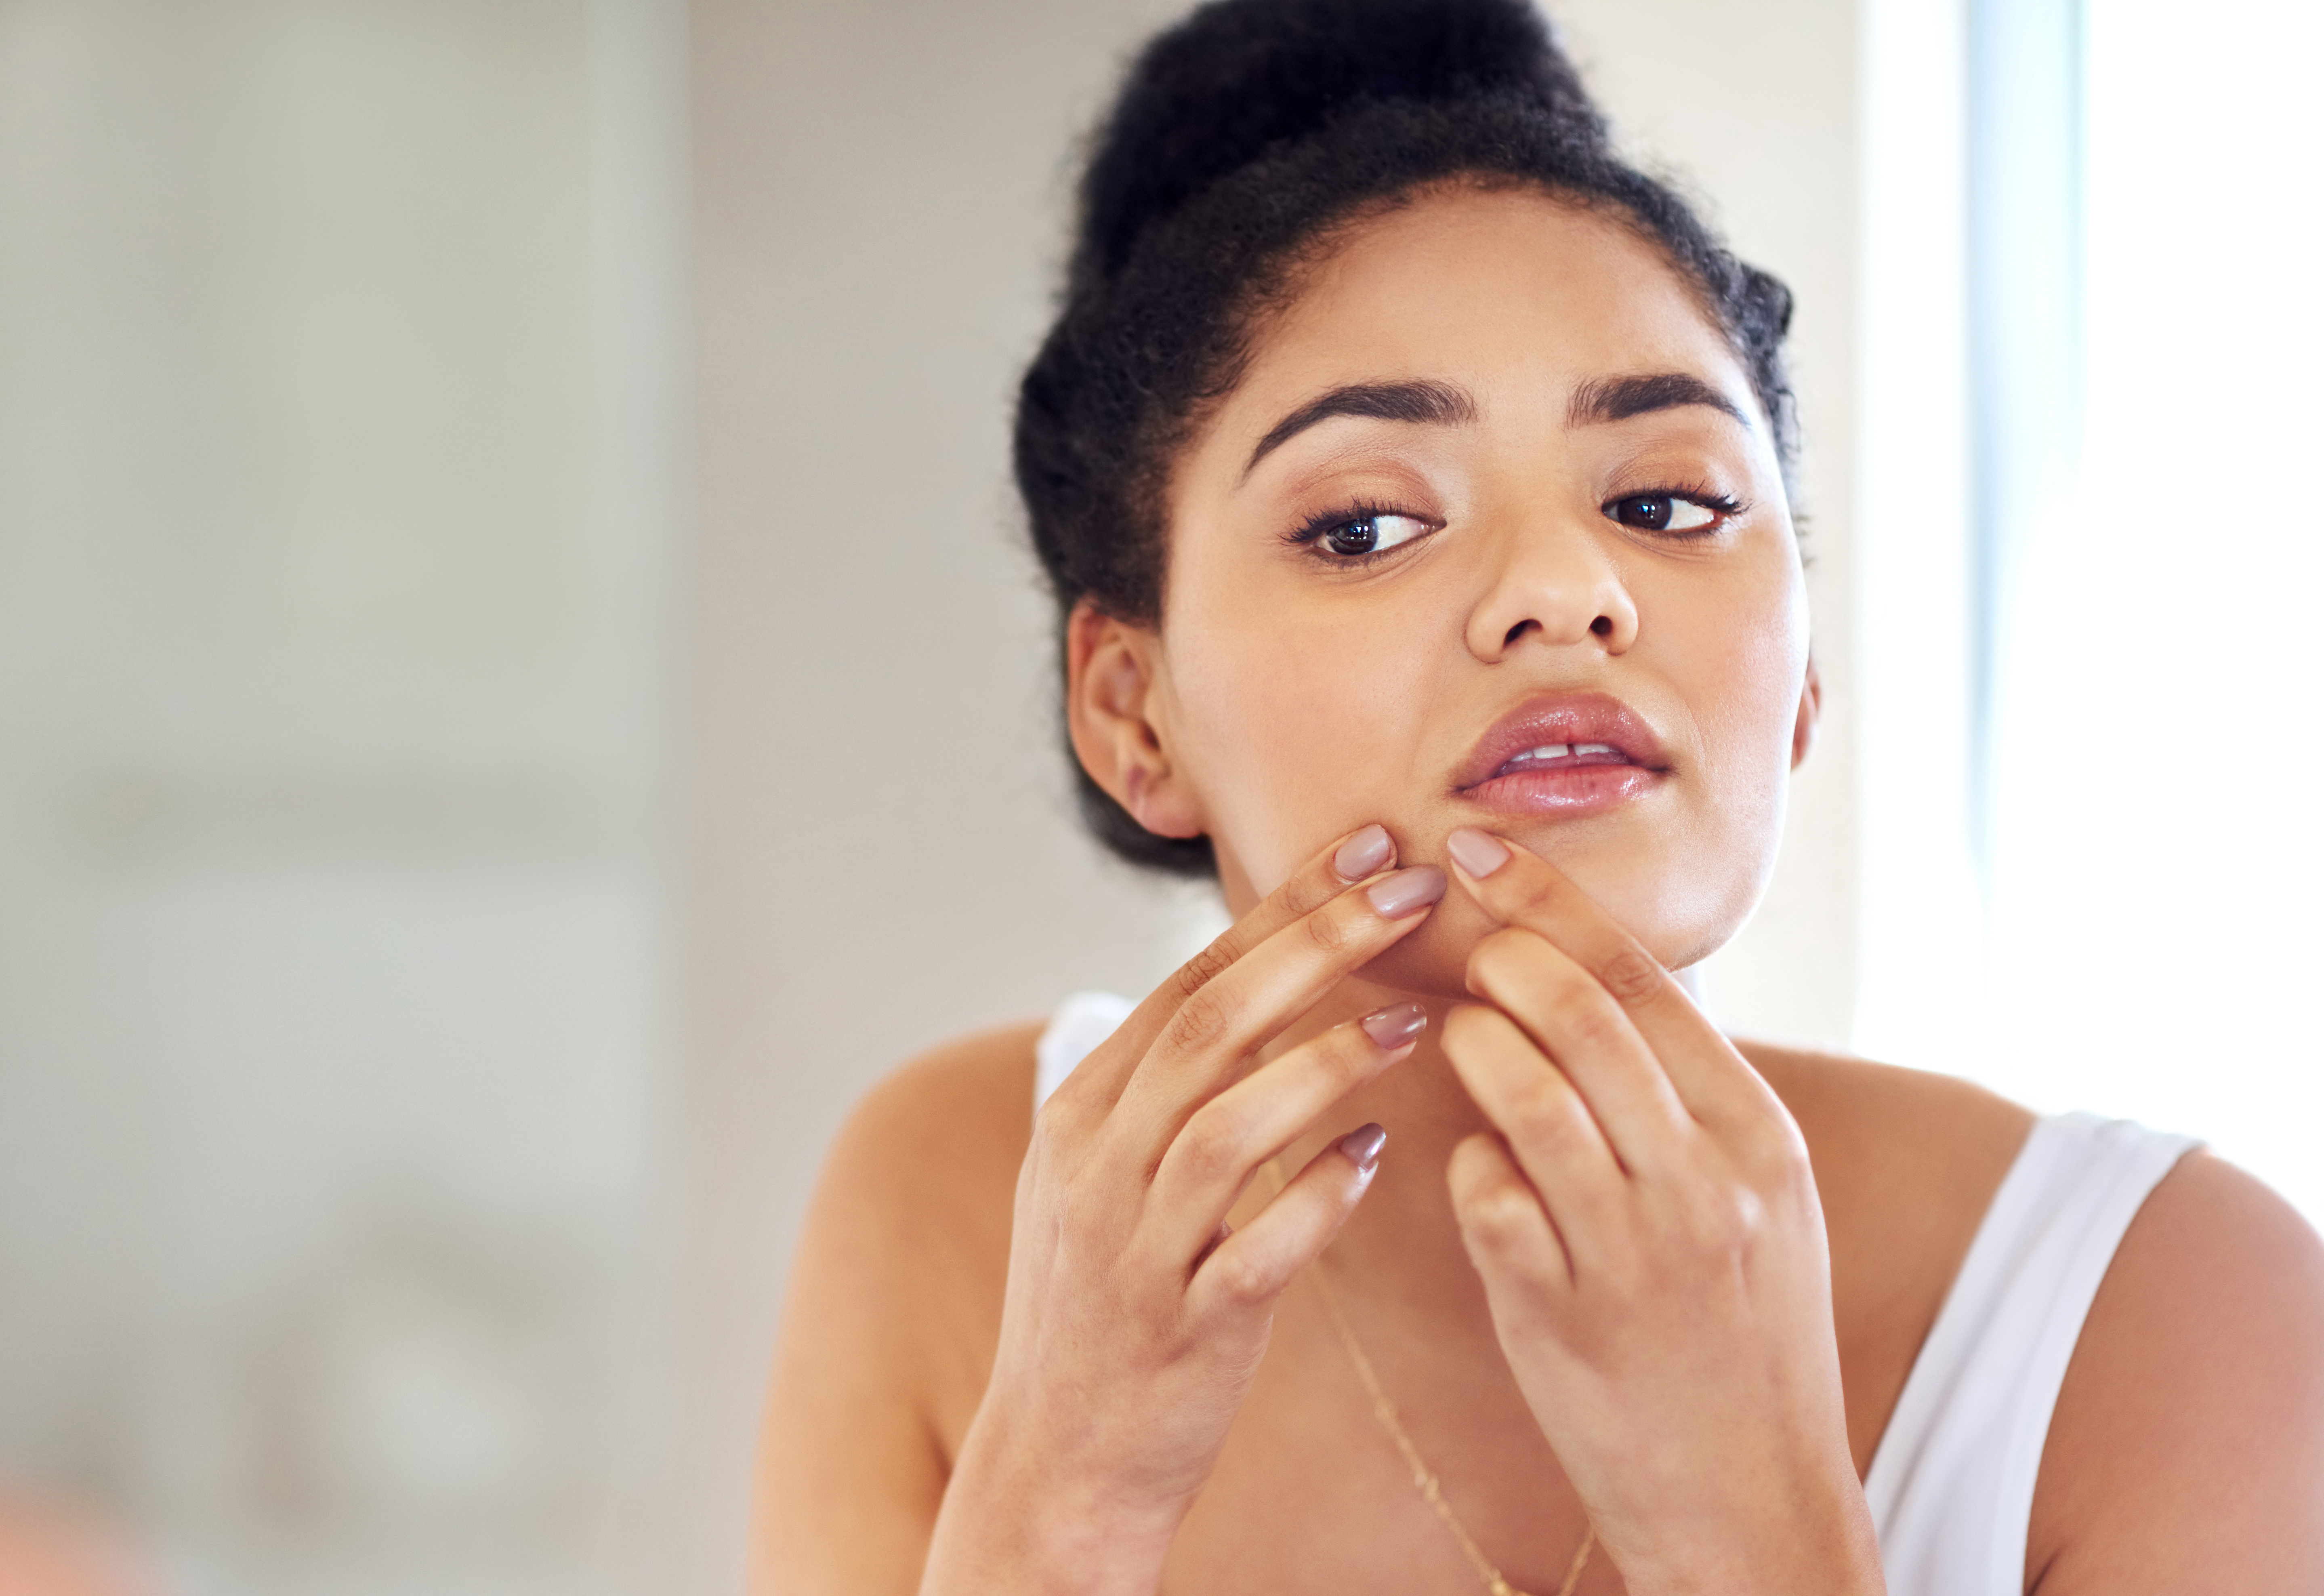 Stress Acne: What to Do About It